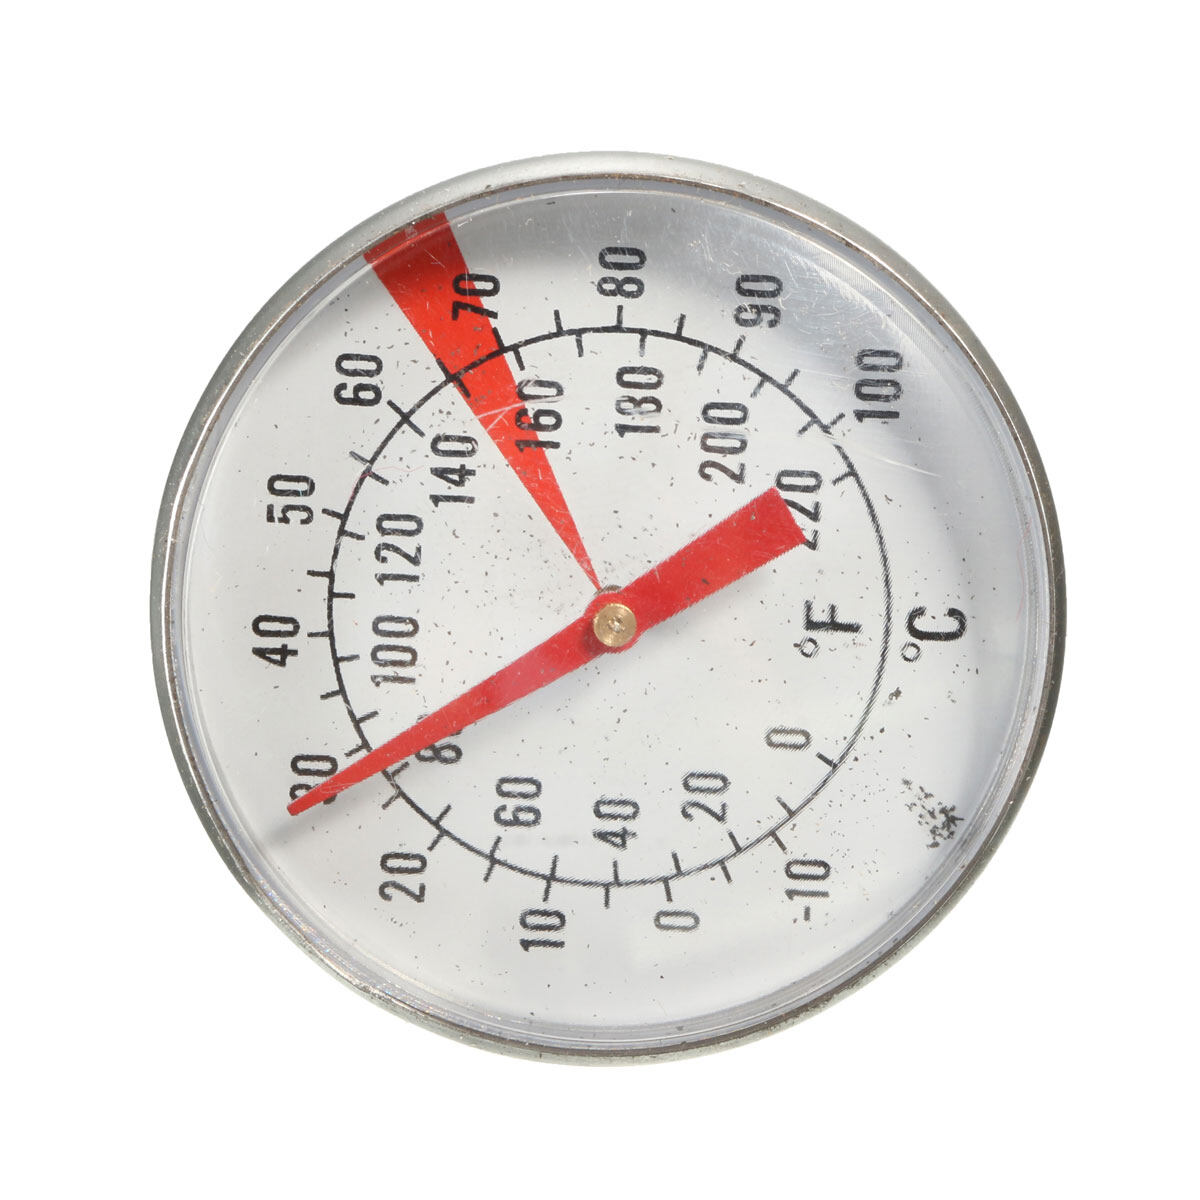 Hình ảnh ? ? Clip Metal Dial Thermometer Jug Clamp Equipment For Candle Soap Jam Making - intl